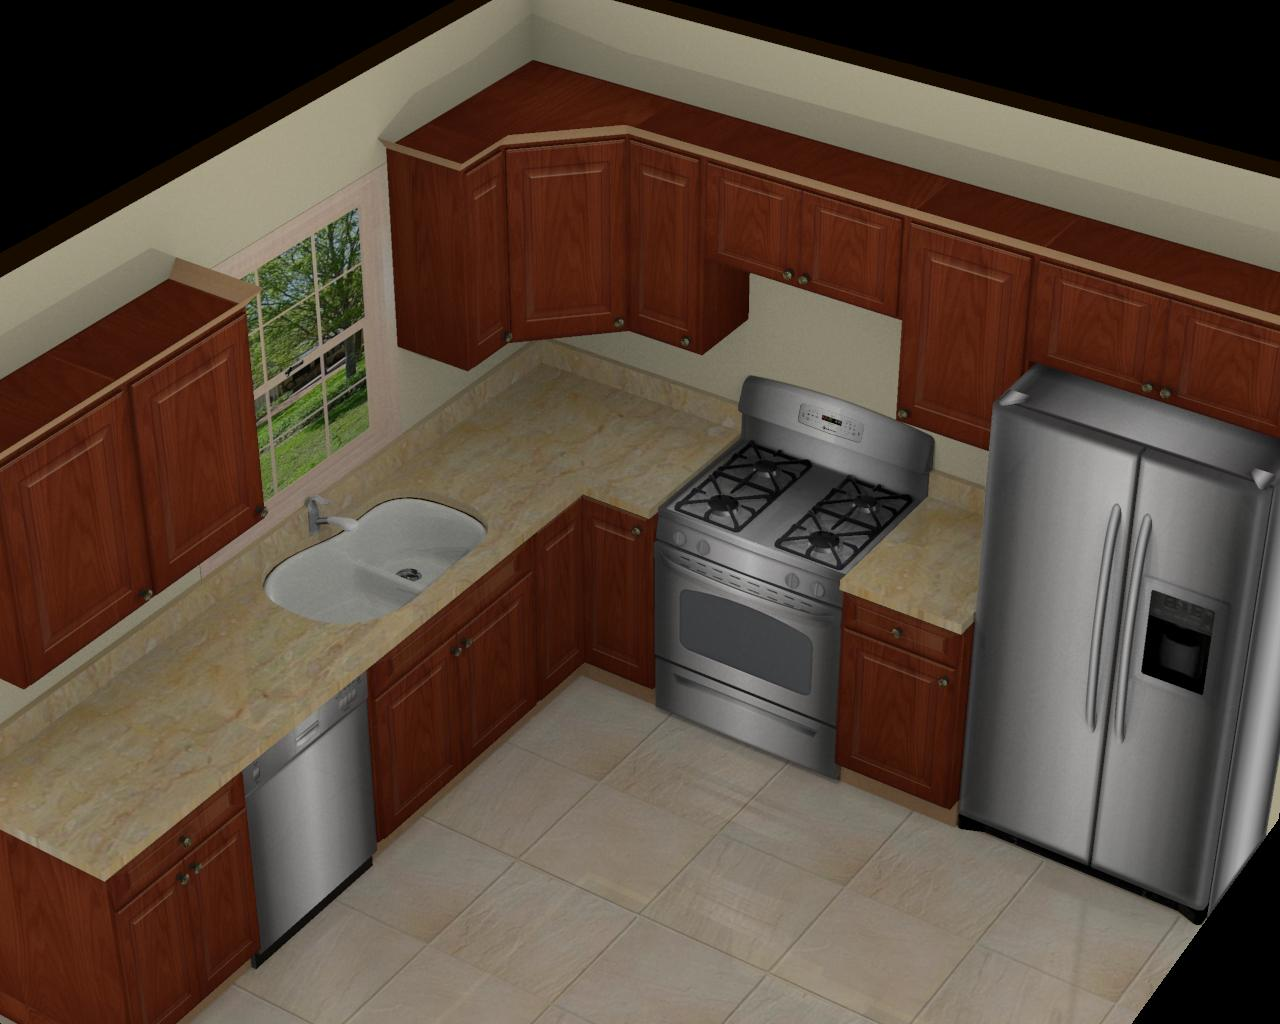 Foundation dezin decor 3d kitchen model design for Kitchen design 10 x 10